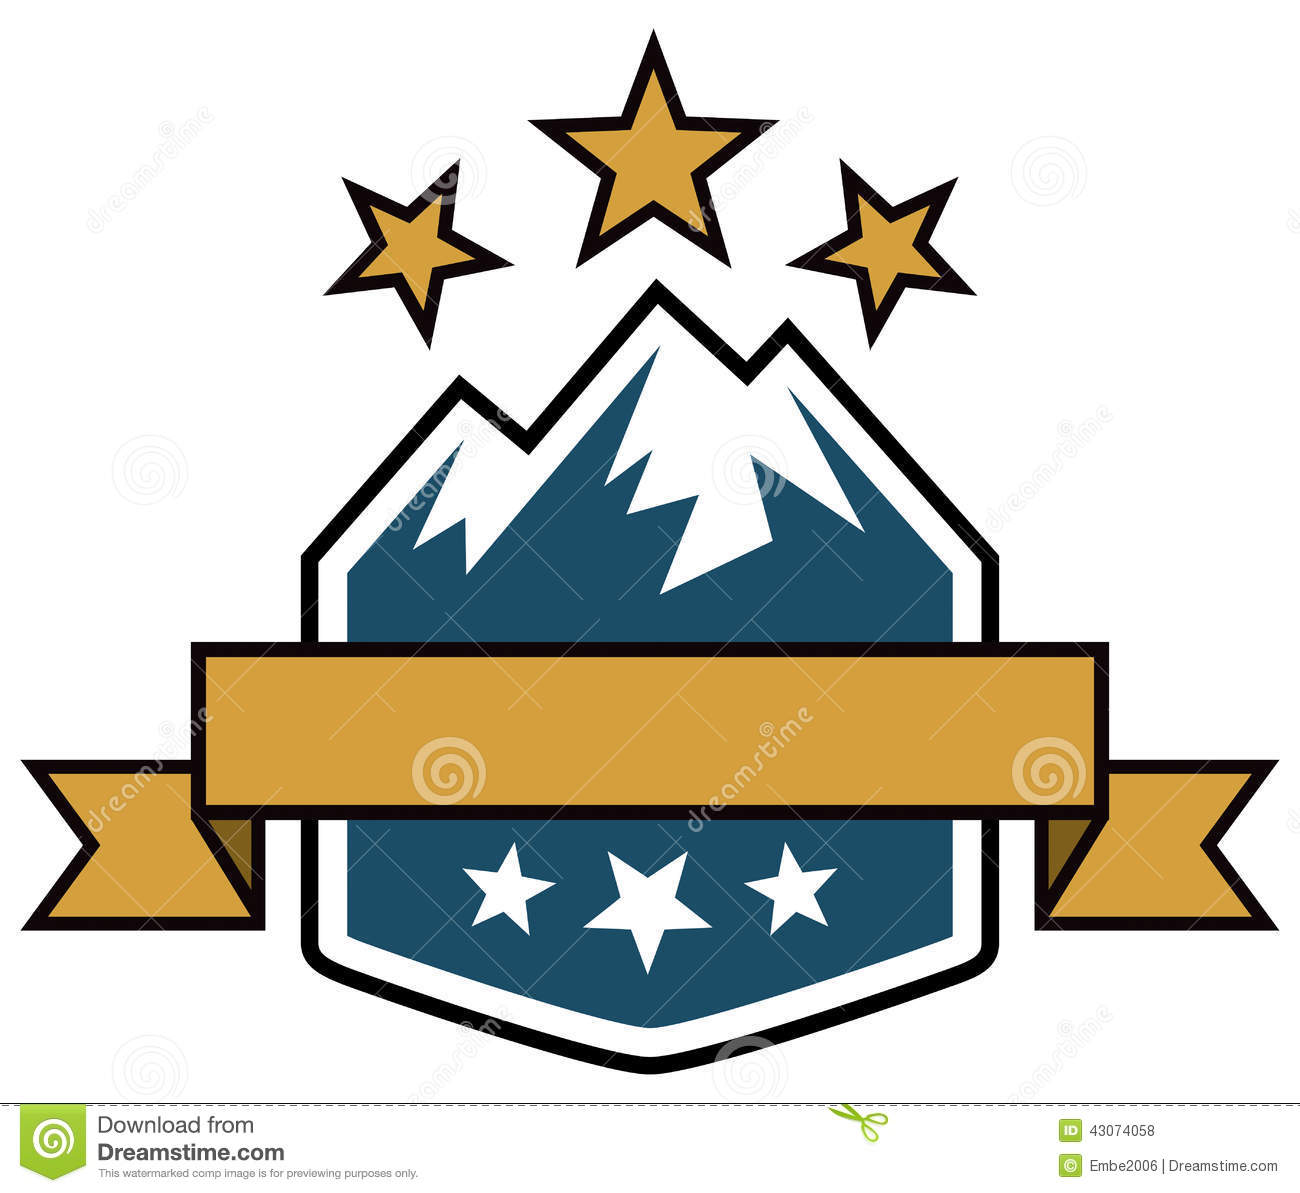 logo of a mountain range and stars in this outdoor adventure logo ...